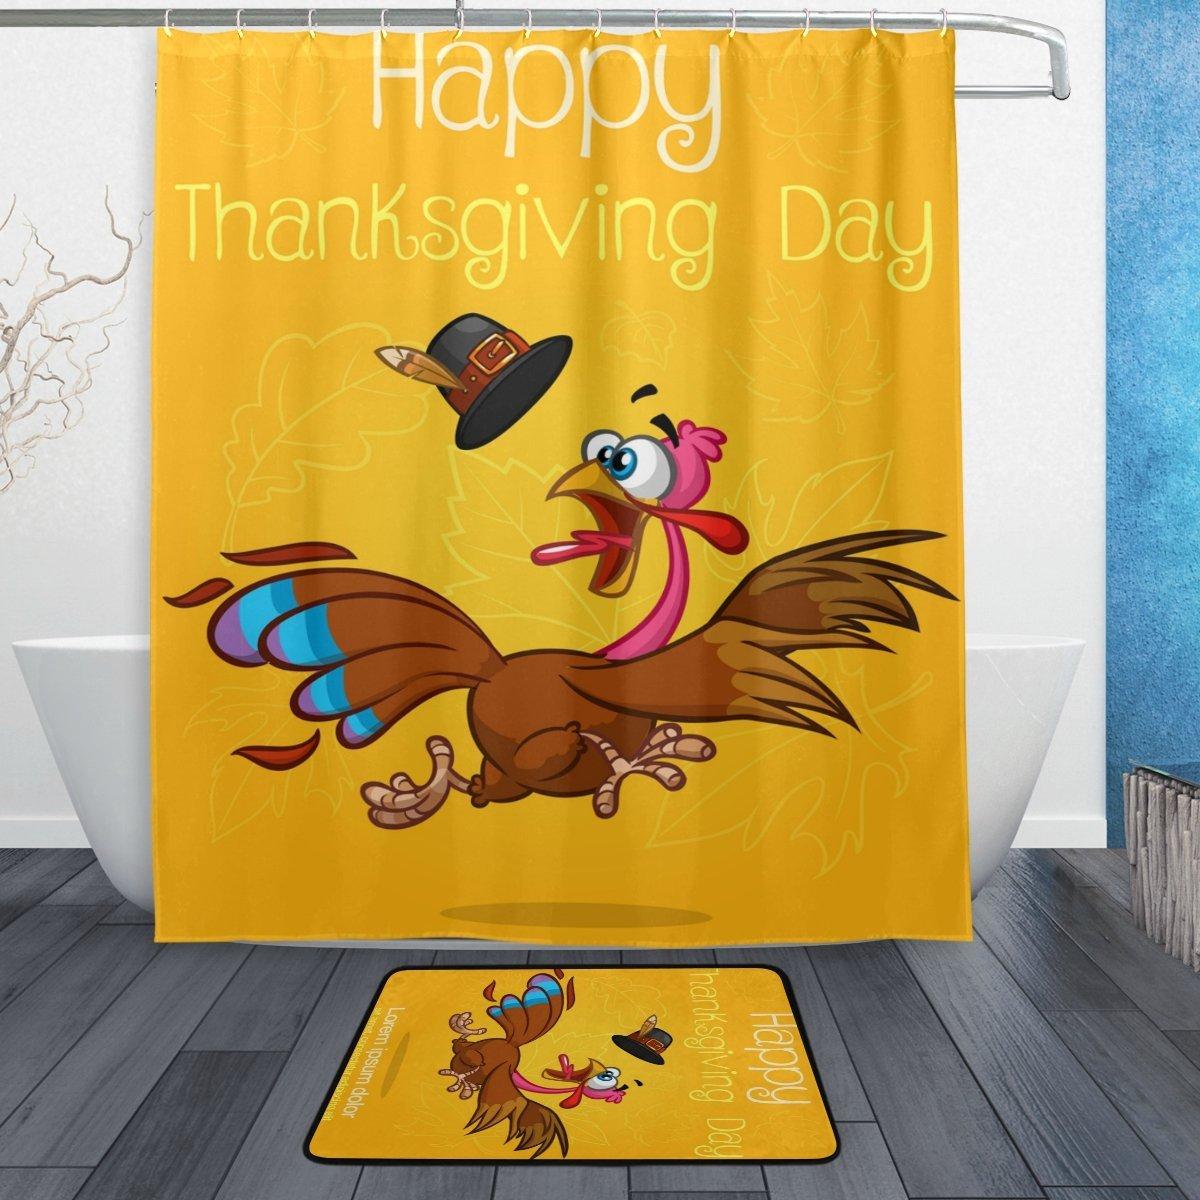 Happy Thanksgiving Shower Curtain And Mat Set Turkey Leaves Waterproof Fabric Bathroom